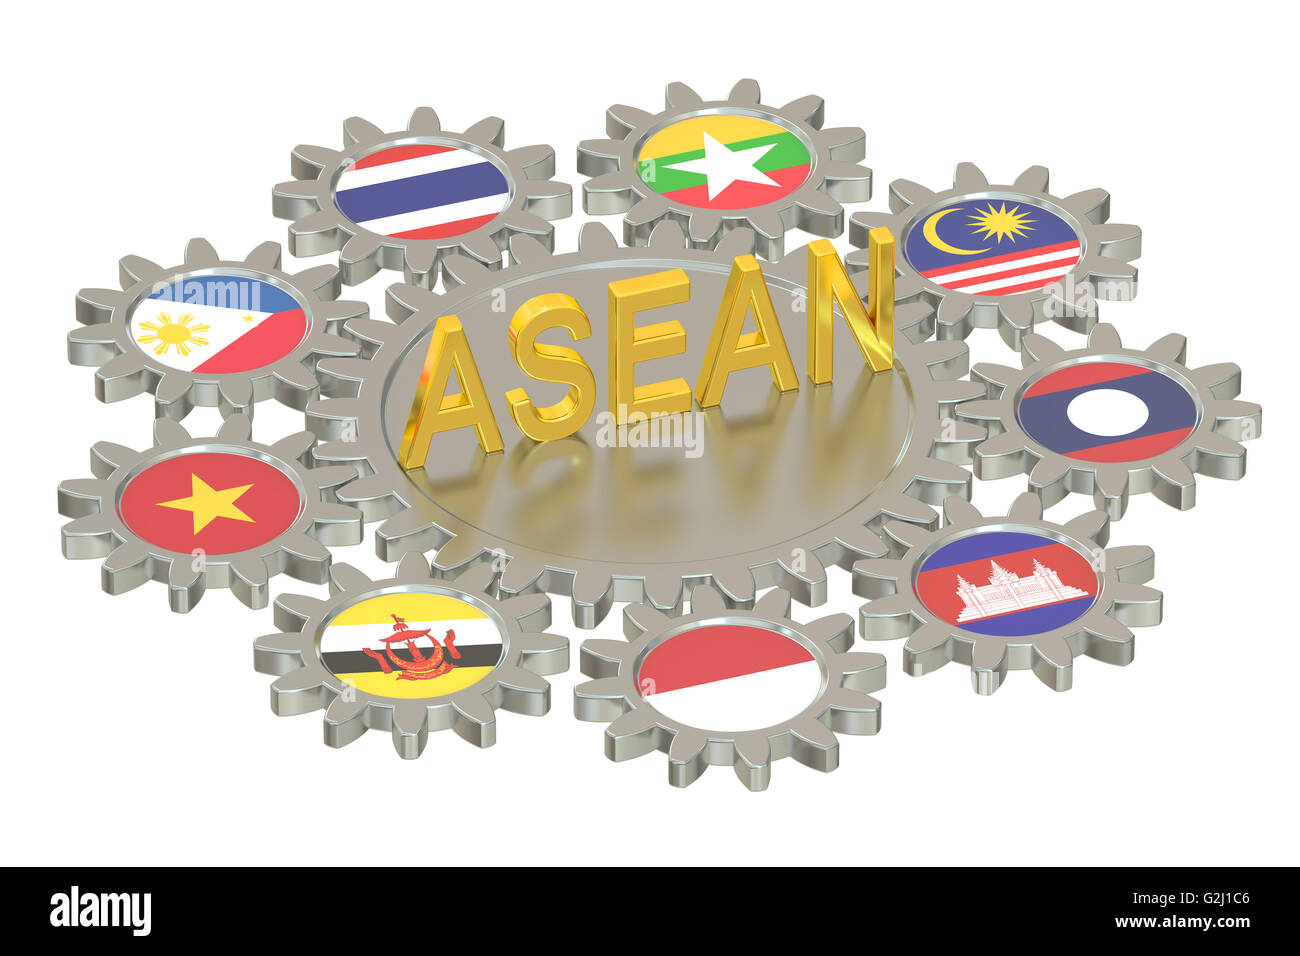 ASEAN concept, 3D rendering isolated on white background - Stock Image